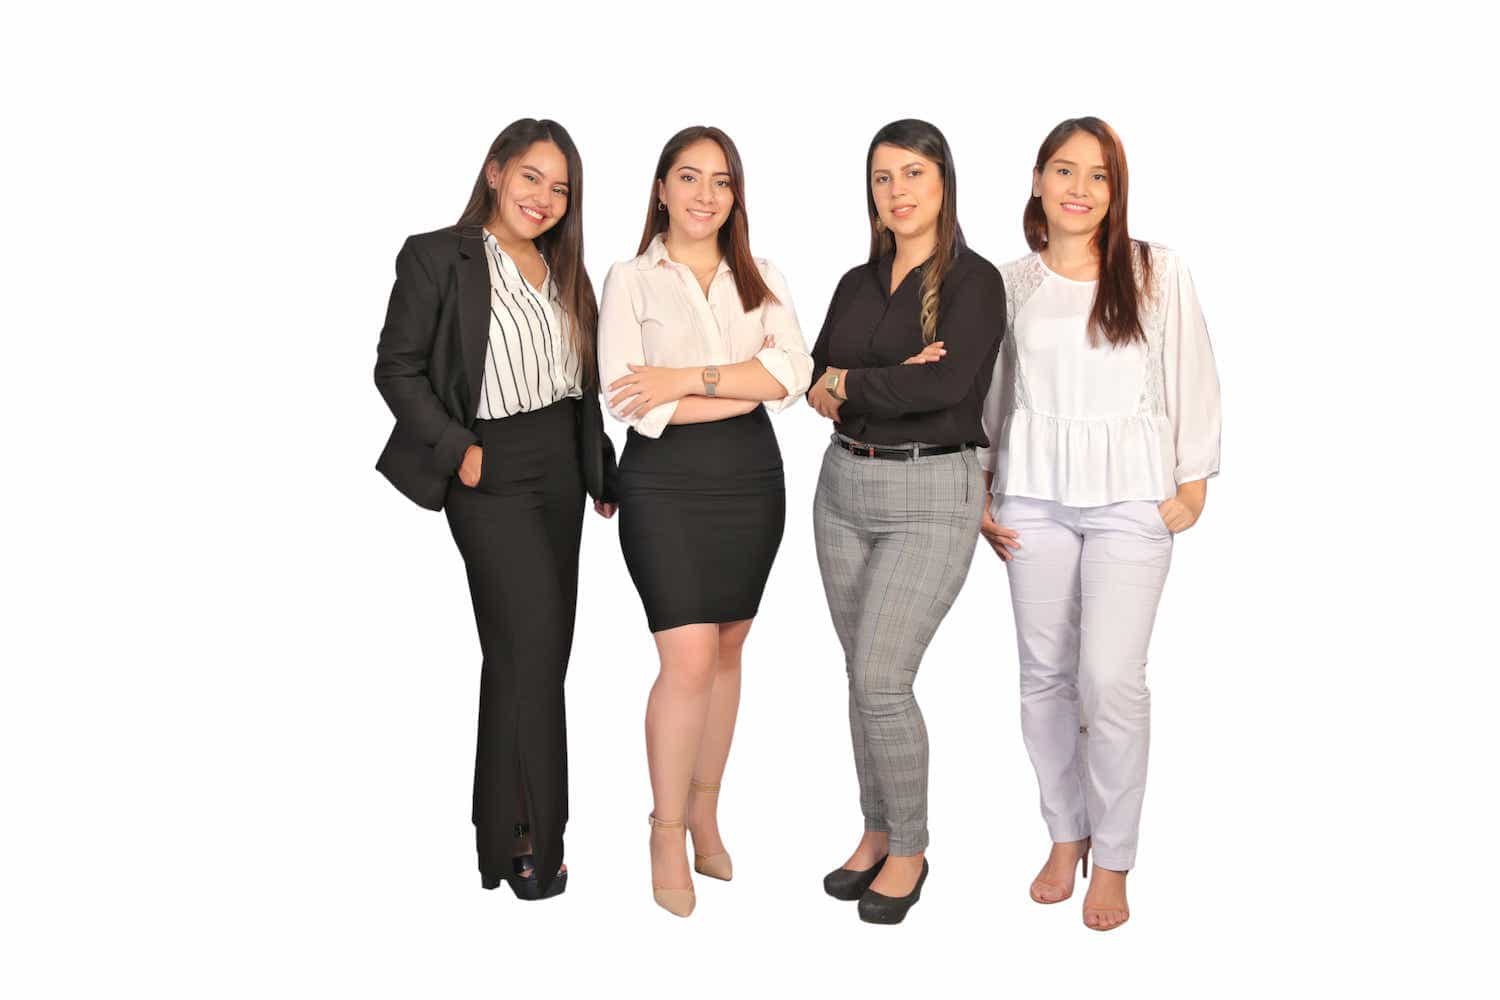 The four sales representatives of Wholesale55